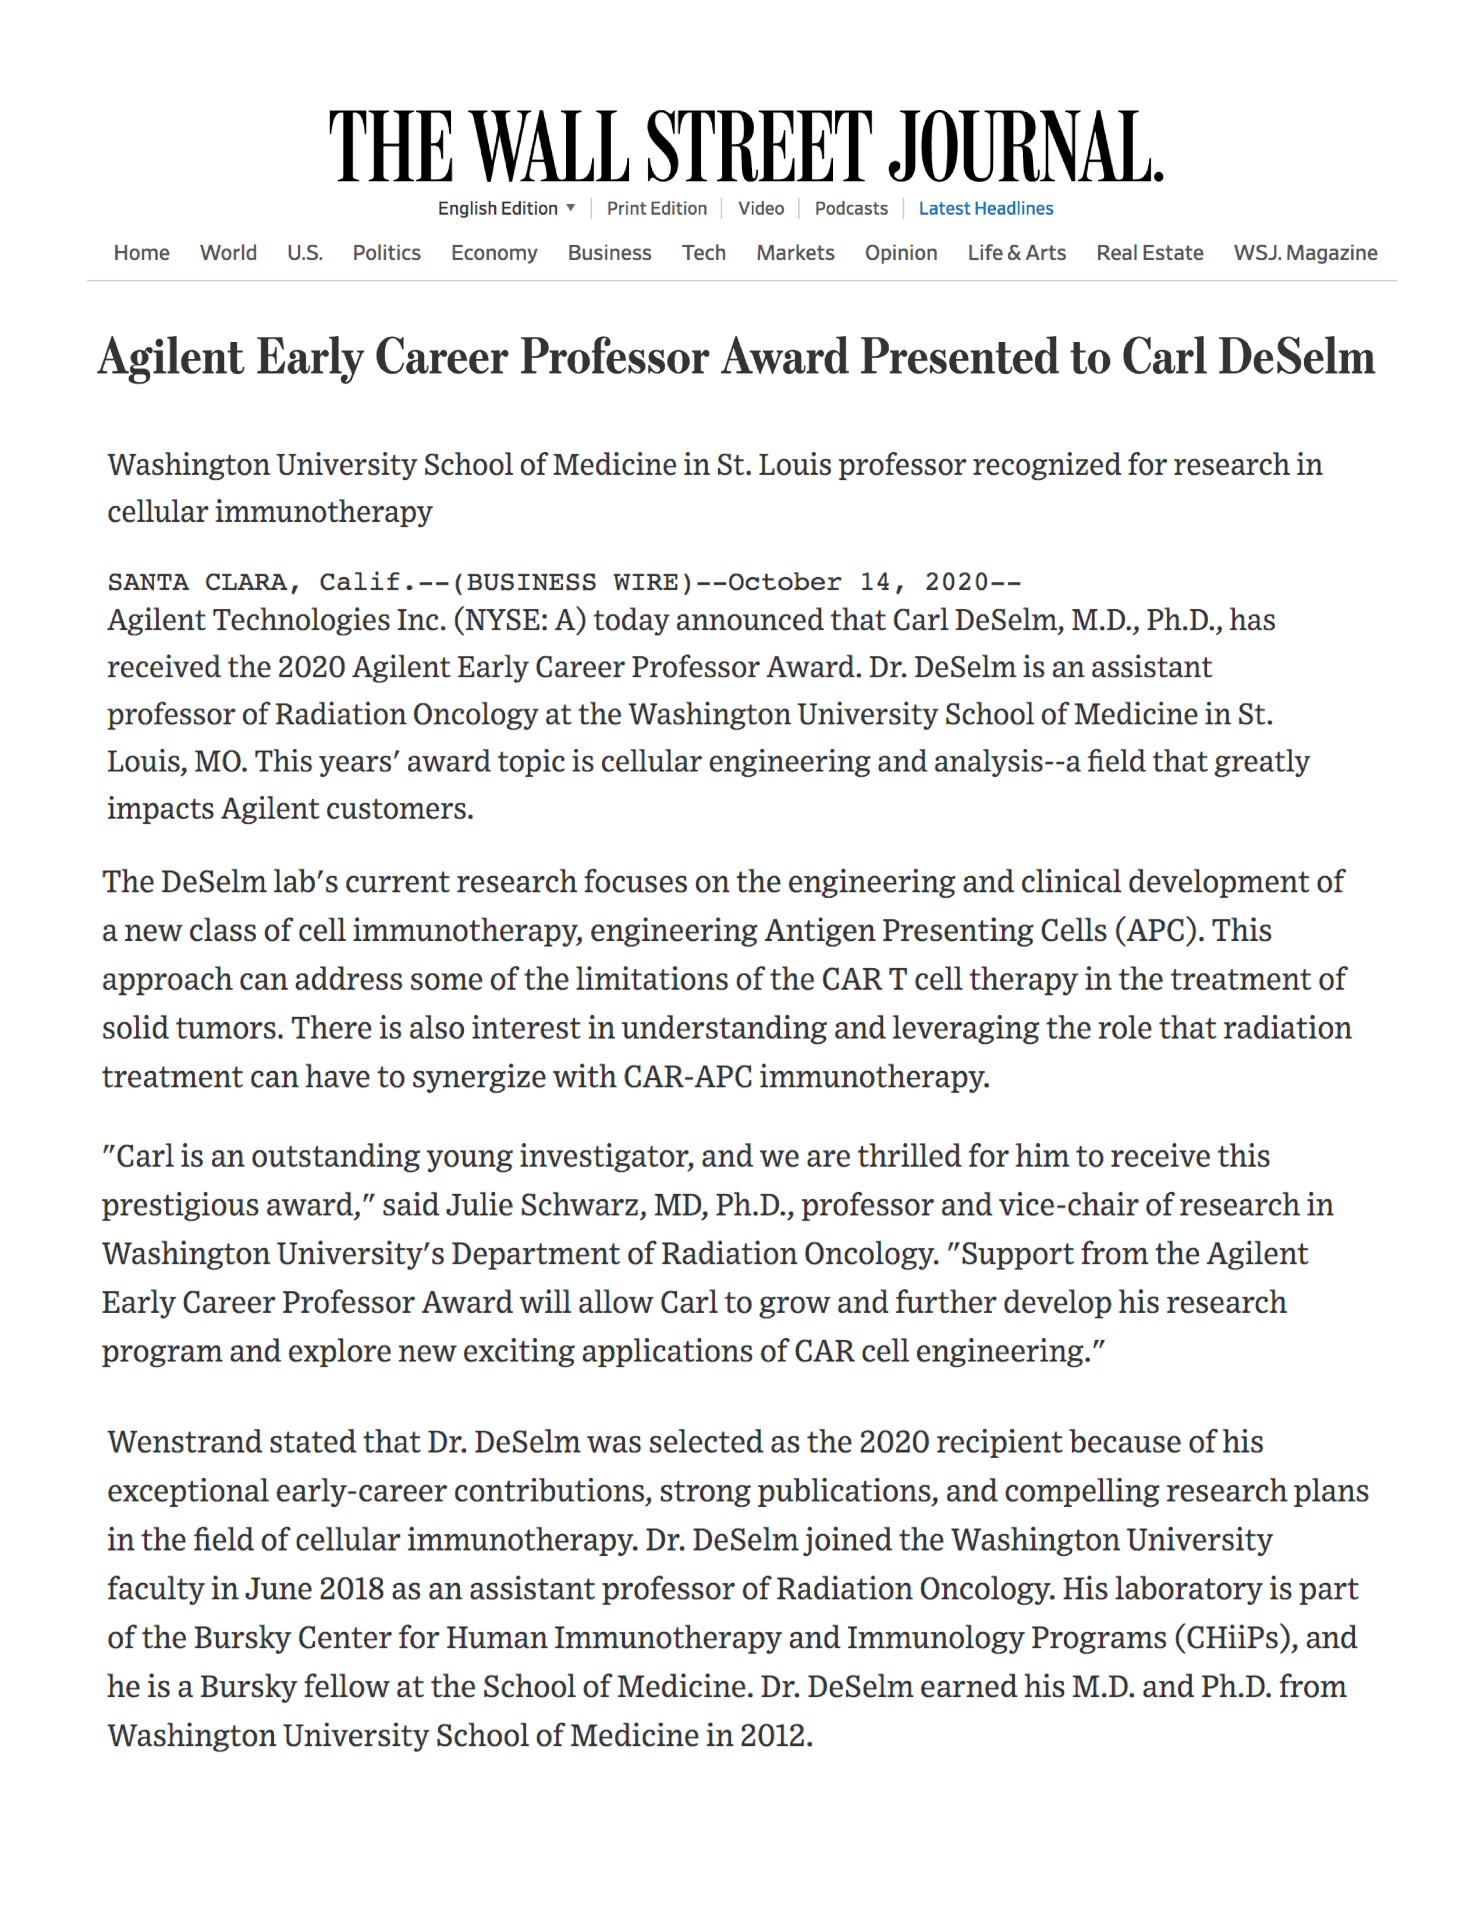 2020 National Agilent Early Career Professor Award Presented to Carl DeSelm